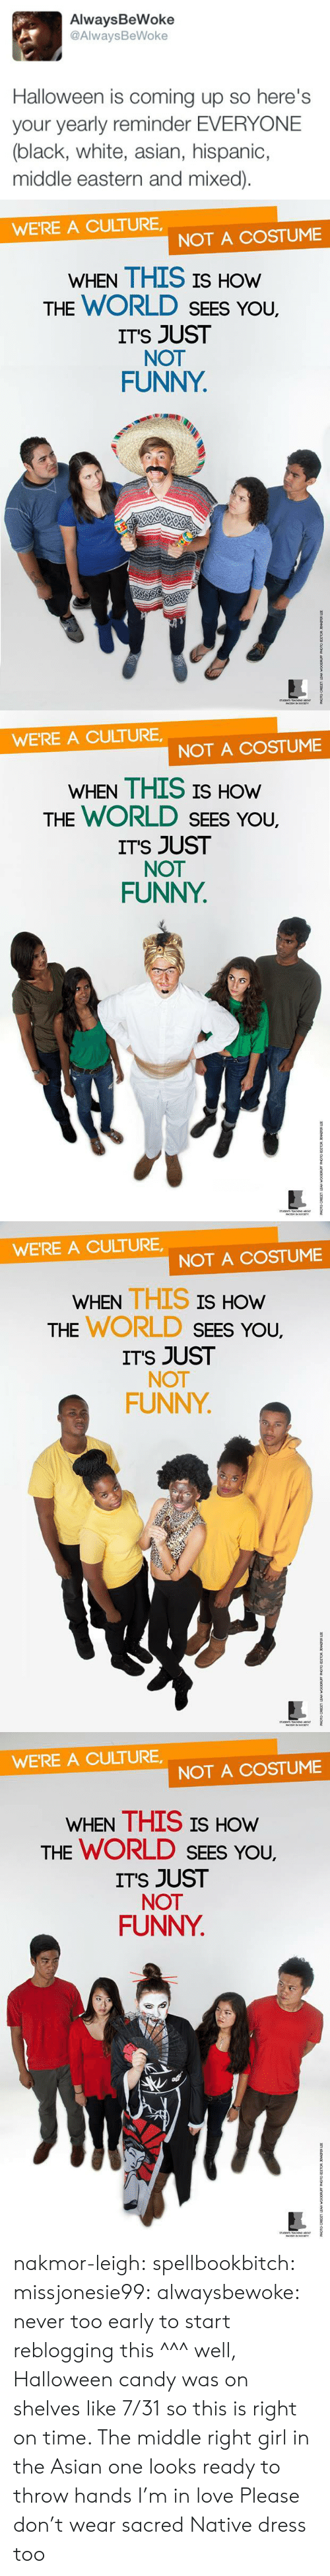 hispanic: AlwaysBeWoke  @AlwaysBeWoke  Halloween is coming up so here's  your yearly reminder EVERYONE  (black, white, asian, hispanic,  middle eastern and mixed)   WE'RE A CULTURE  NOT A COSTUME  WHEN THIS IS HOW  THE WORLD SEES YoU.  ITS JUST  NOT  FUNNY   WE'RE A CULTURE  NOT A COSTUME  WHEN THIS IS HOW  THE WORLD SEES YoU.  ITS JUST  NOT  FUNNY   WE'RE A CULTURE,  NOT A COSTUME  WHEN THIS IS  HOW  THE WORLD SEEs You,  ITS JUST  NOT  FUNNY   WE'RE A CULTURE  NOT A COSTUME  WHEN THIS IS HOw  THE WORLD SEES You,  ITS JUST  NOT  FUNNY nakmor-leigh: spellbookbitch:  missjonesie99:  alwaysbewoke:  never too early to start reblogging this  ^^^ well, Halloween candy was on shelves like 7/31 so this is right on time.    The middle right girl in the Asian one looks ready to throw hands I'm in love   Please don't wear sacred Native dress too